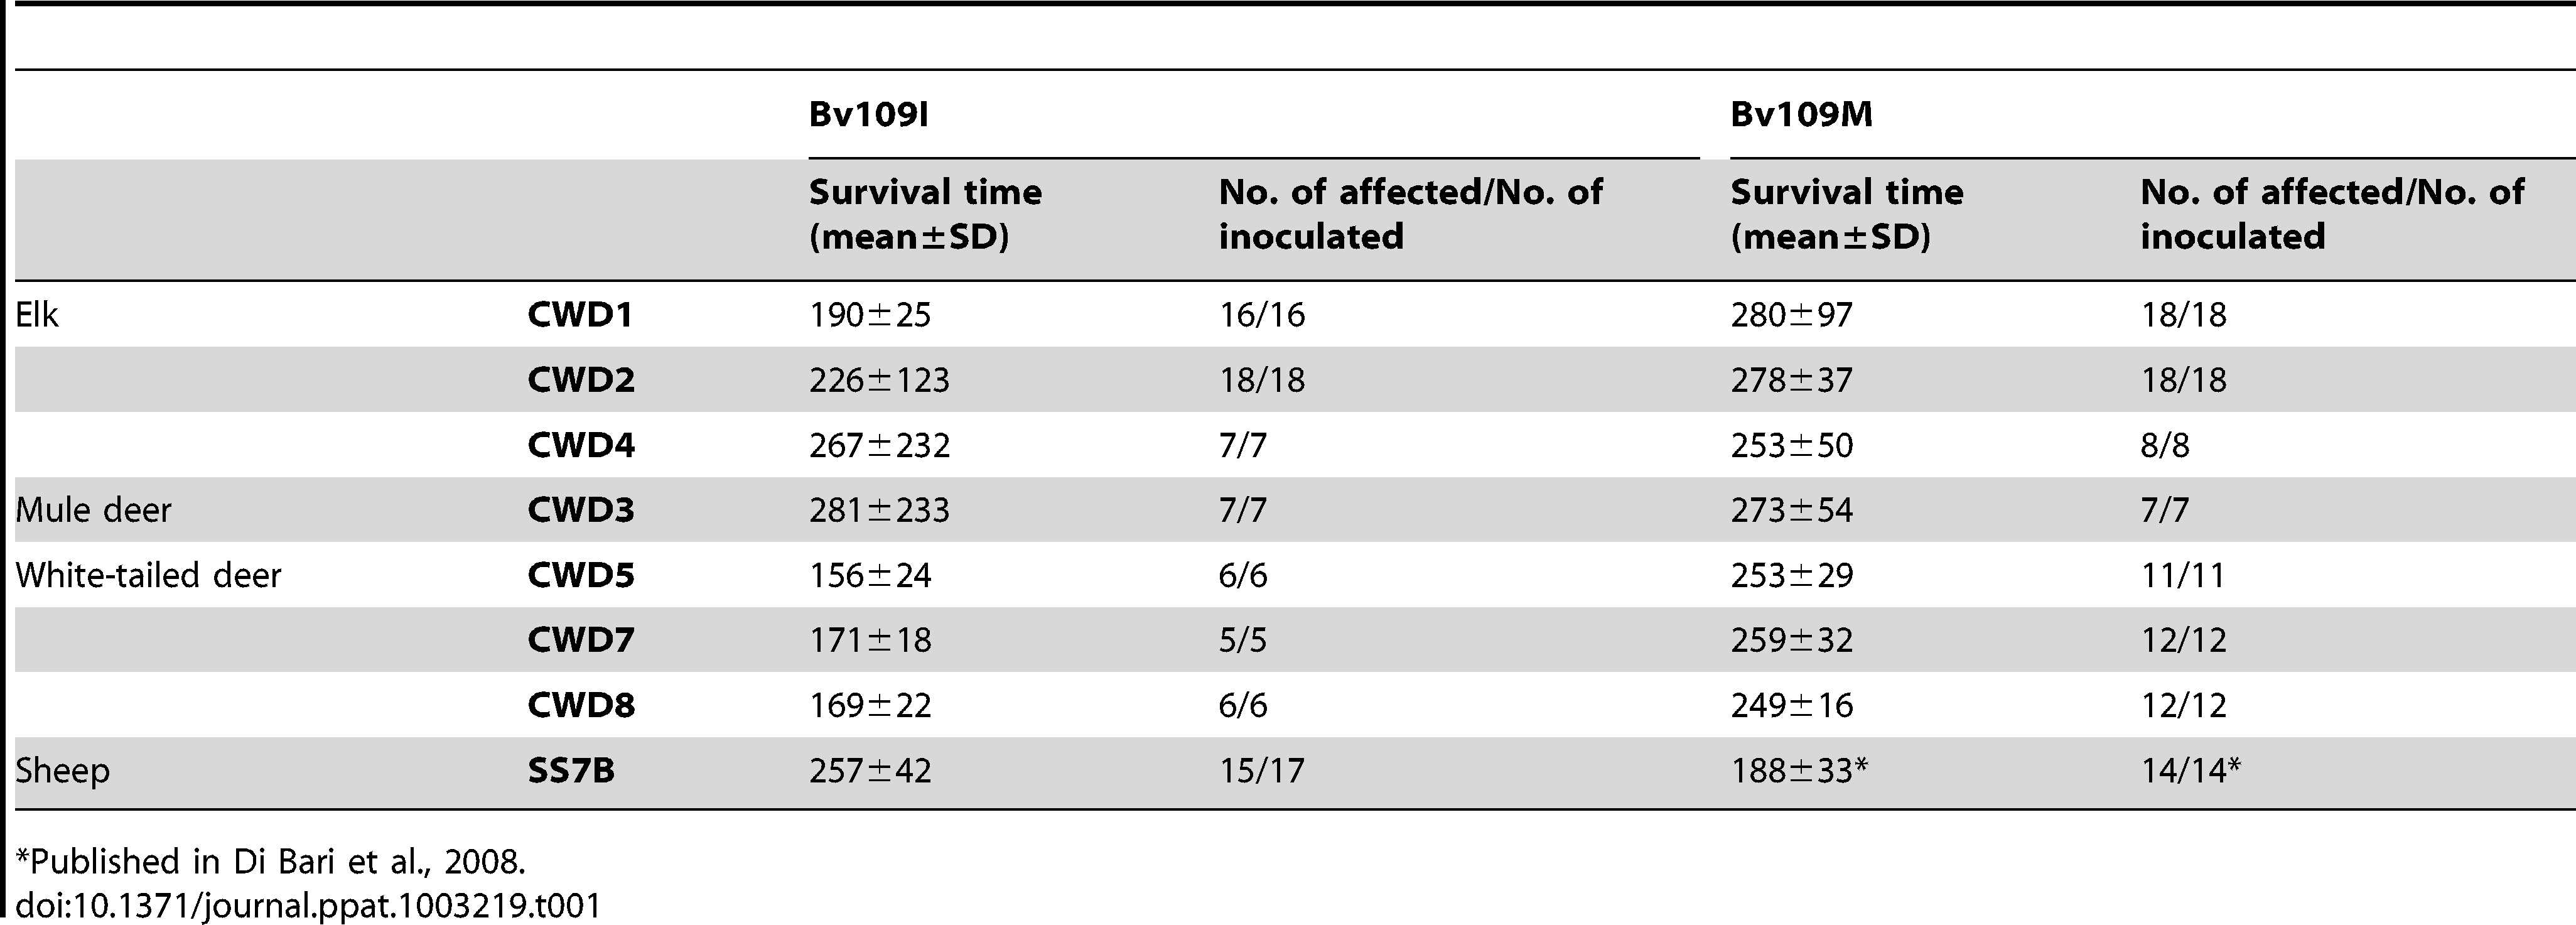 Survival times of Bv109I and Bv109M after primary transmission of CWD.